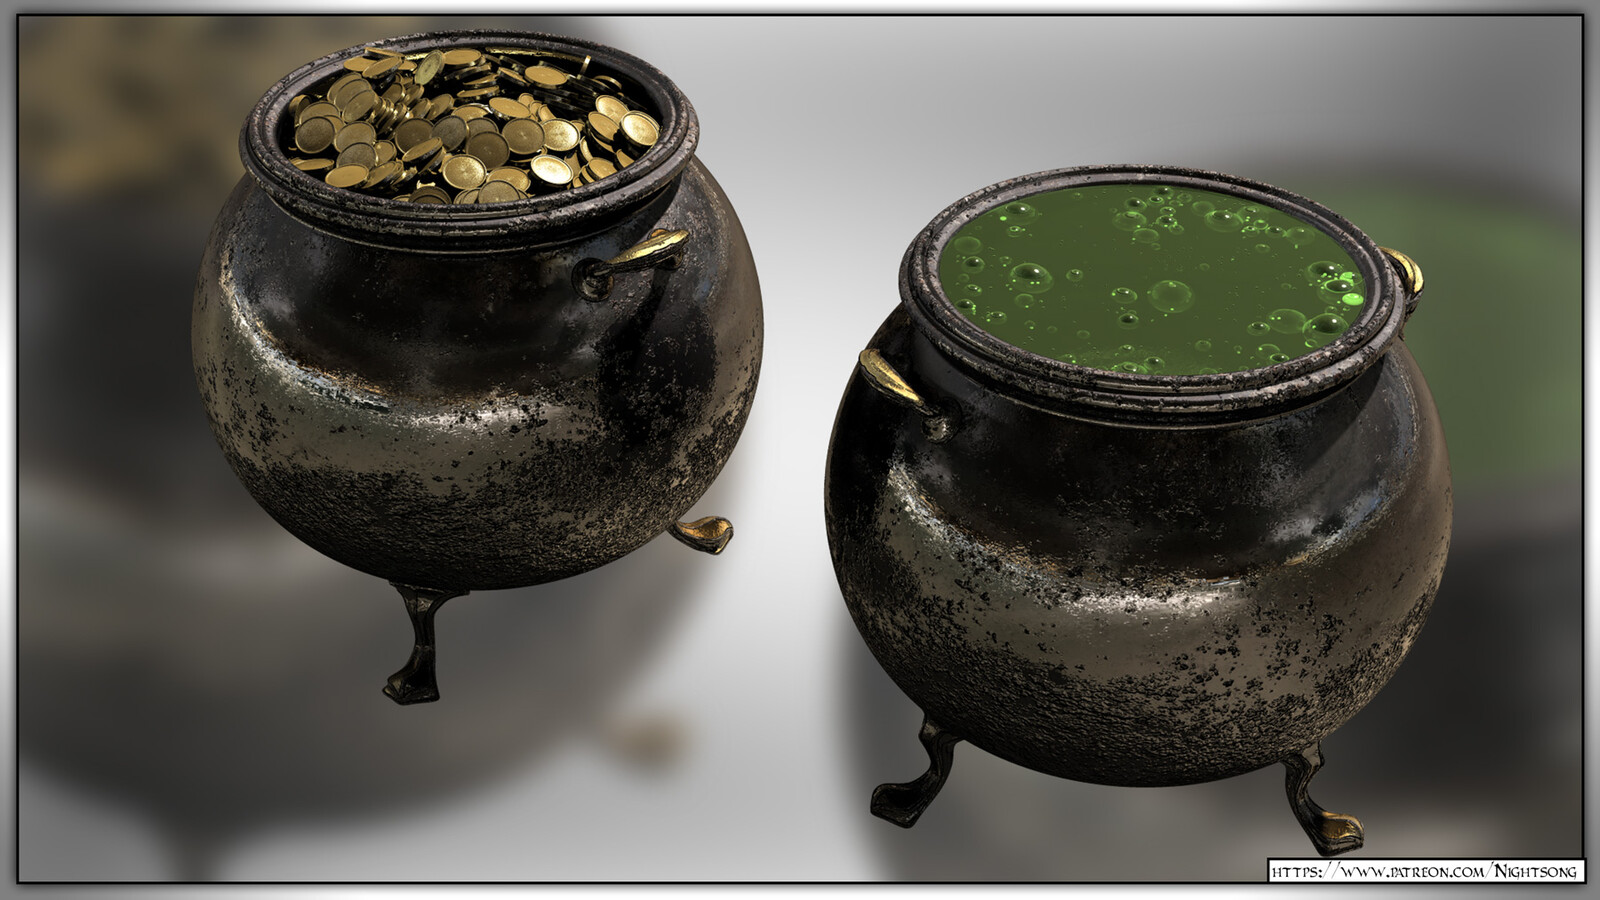 This shows both of the cauldrons, rendered with Poser presets.